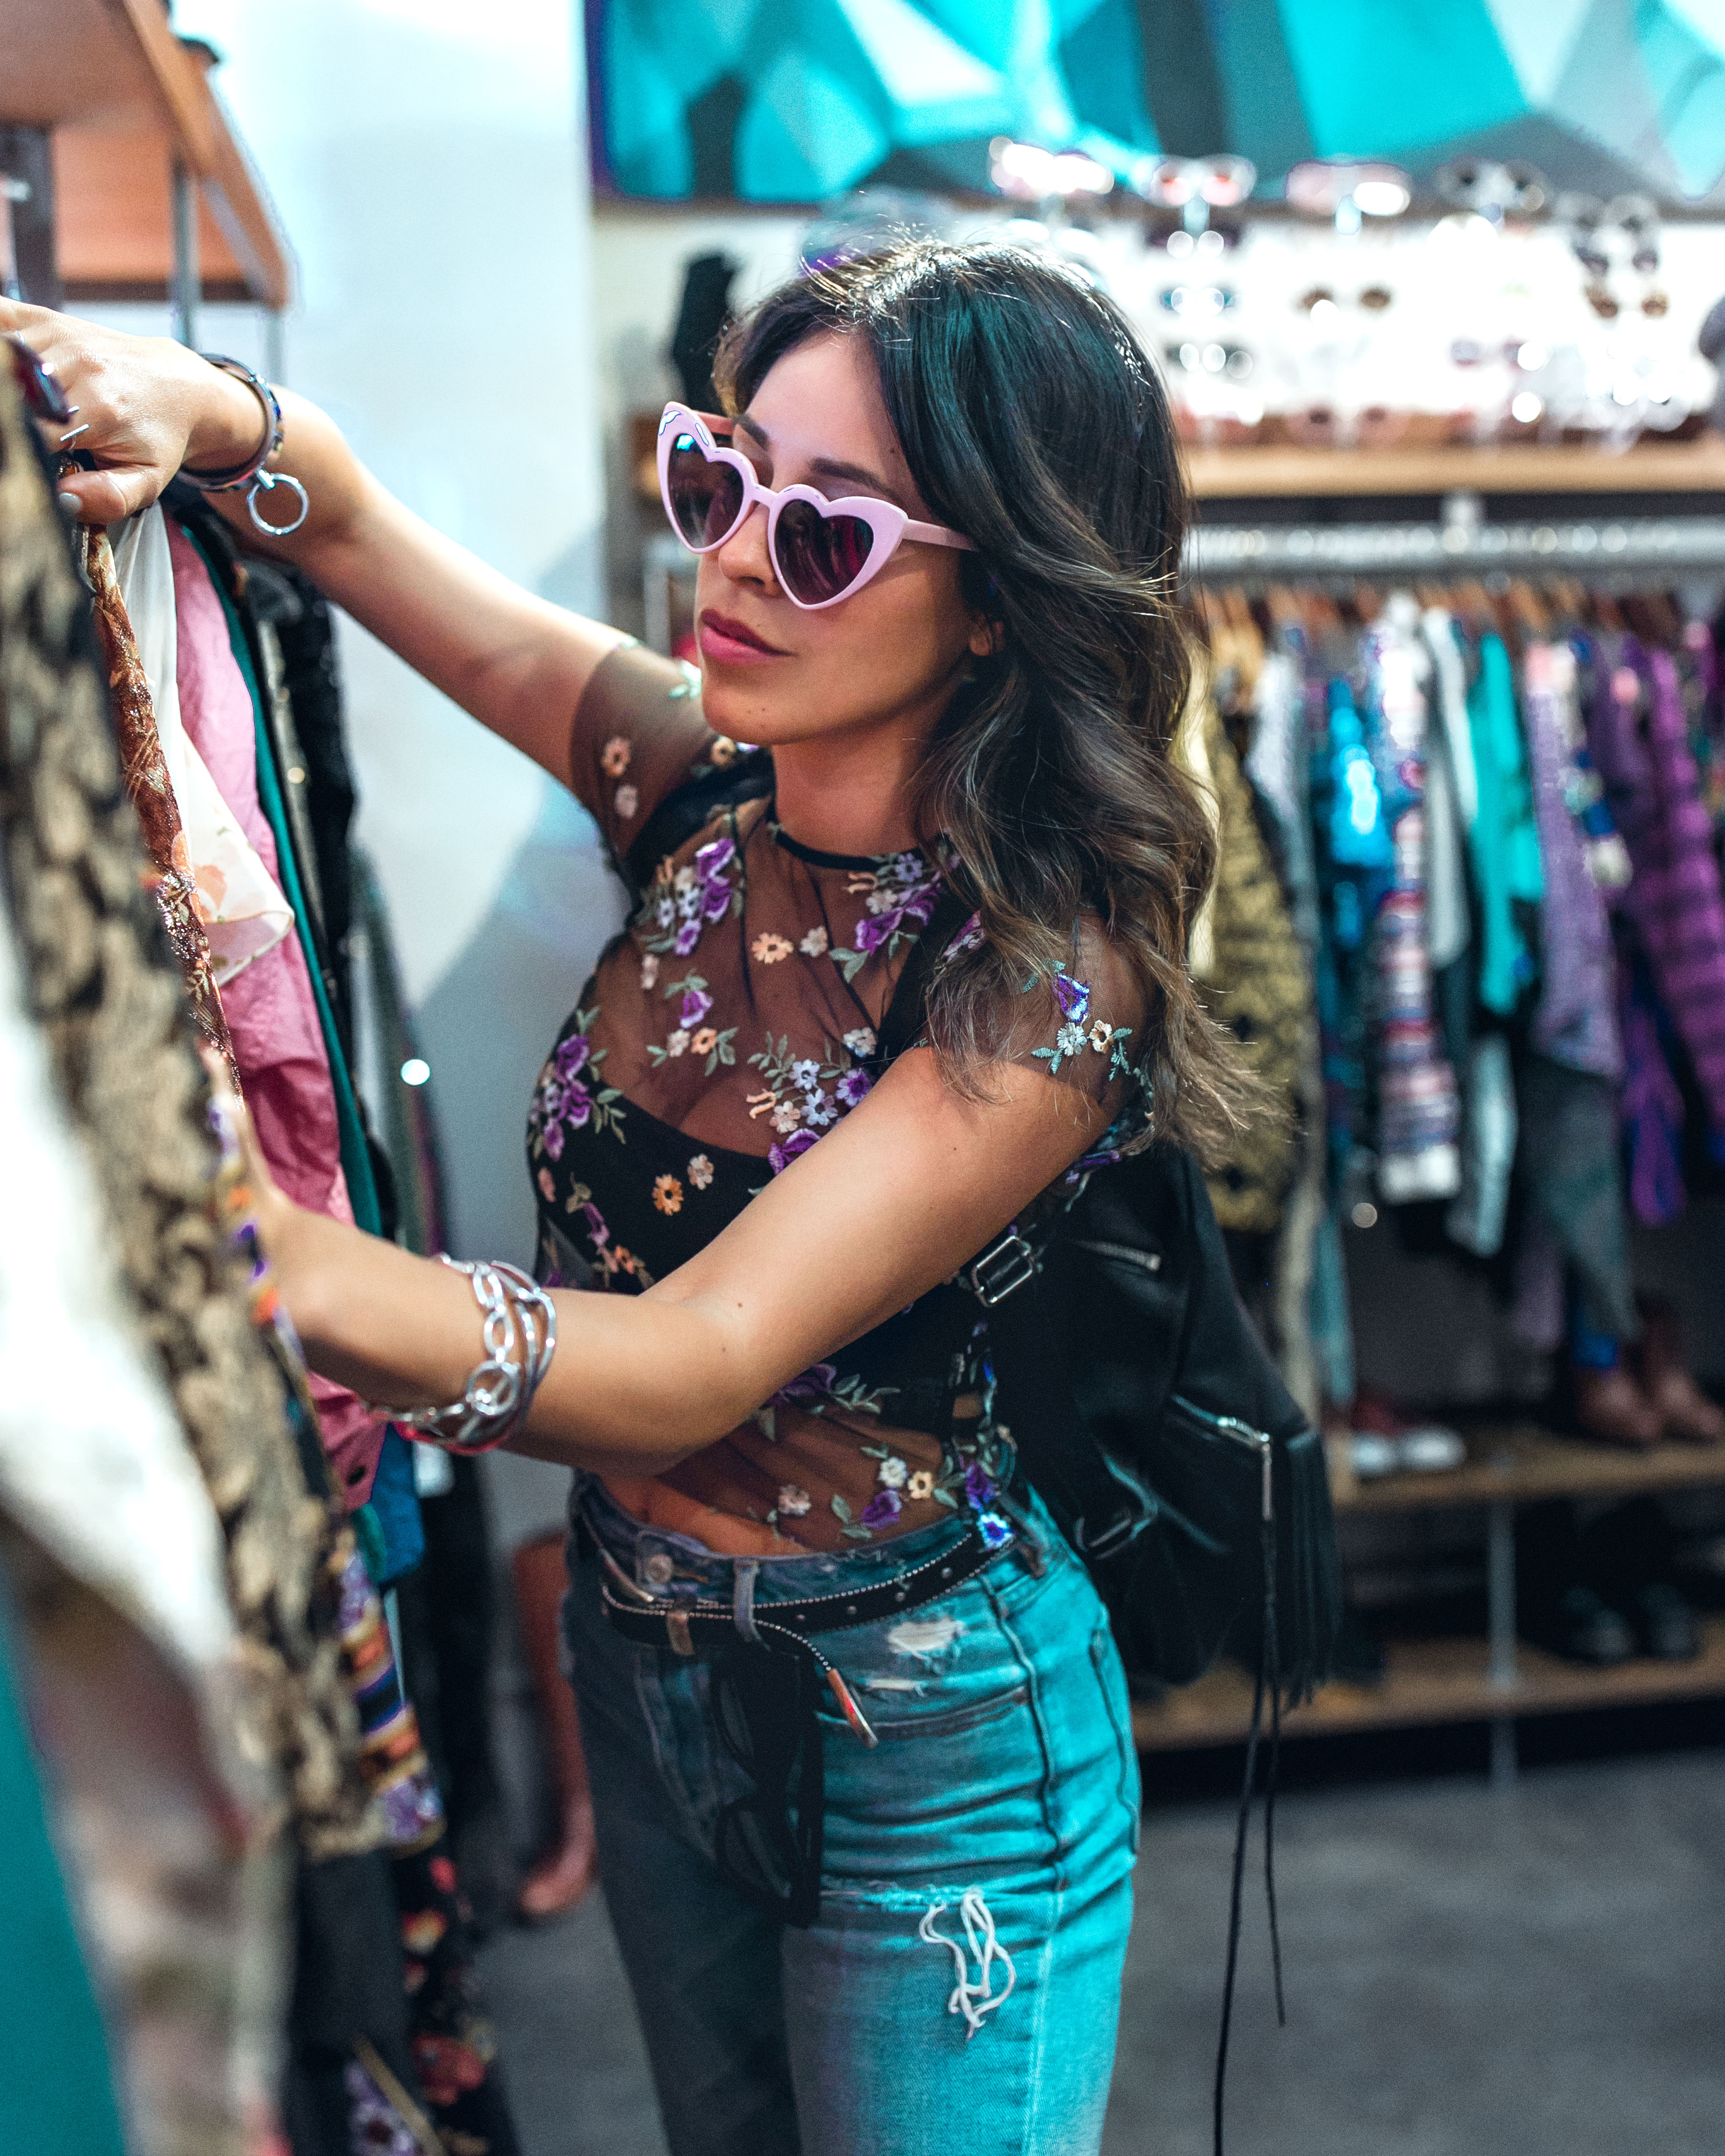 Vintage Shopping in North Park,  San Diego – Video